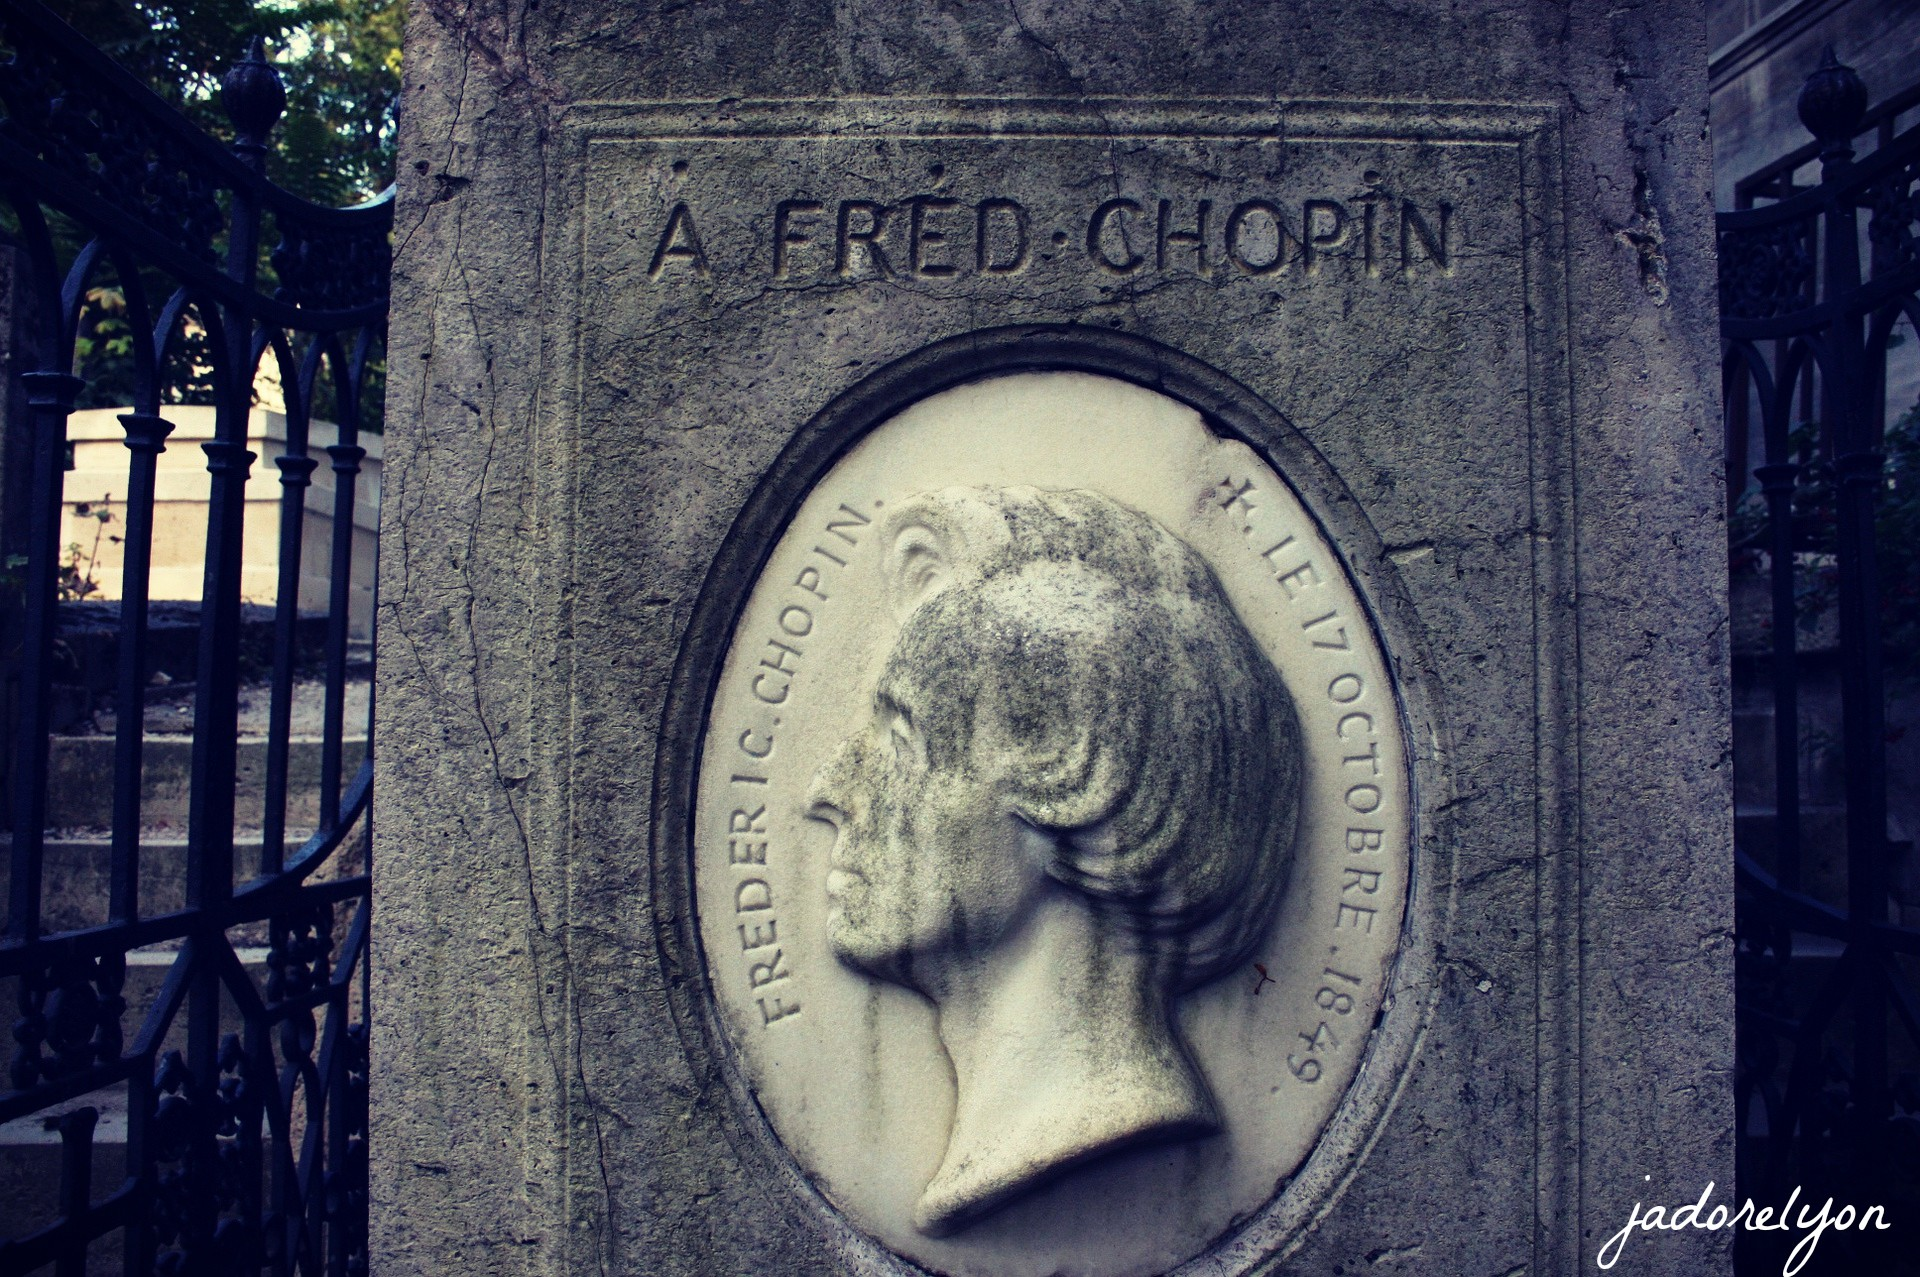 Chopin - the Polish famous pianist